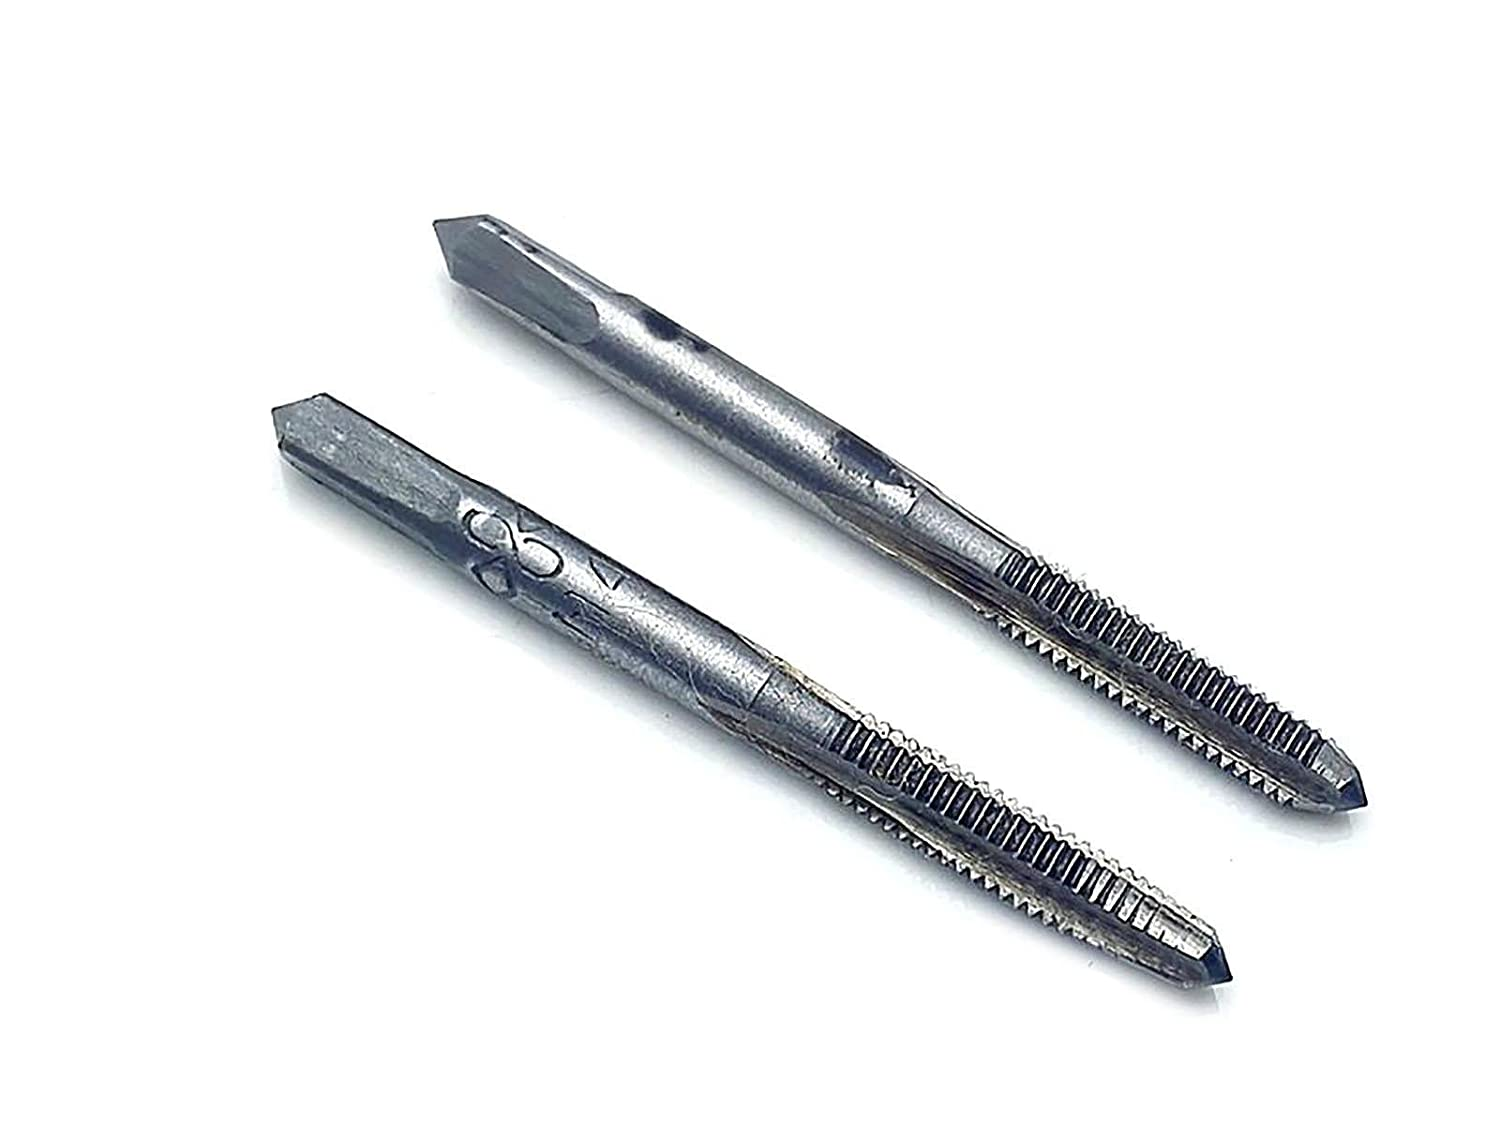 M4.5 x 0.75 HSS Right Hand Thread Forming Tap